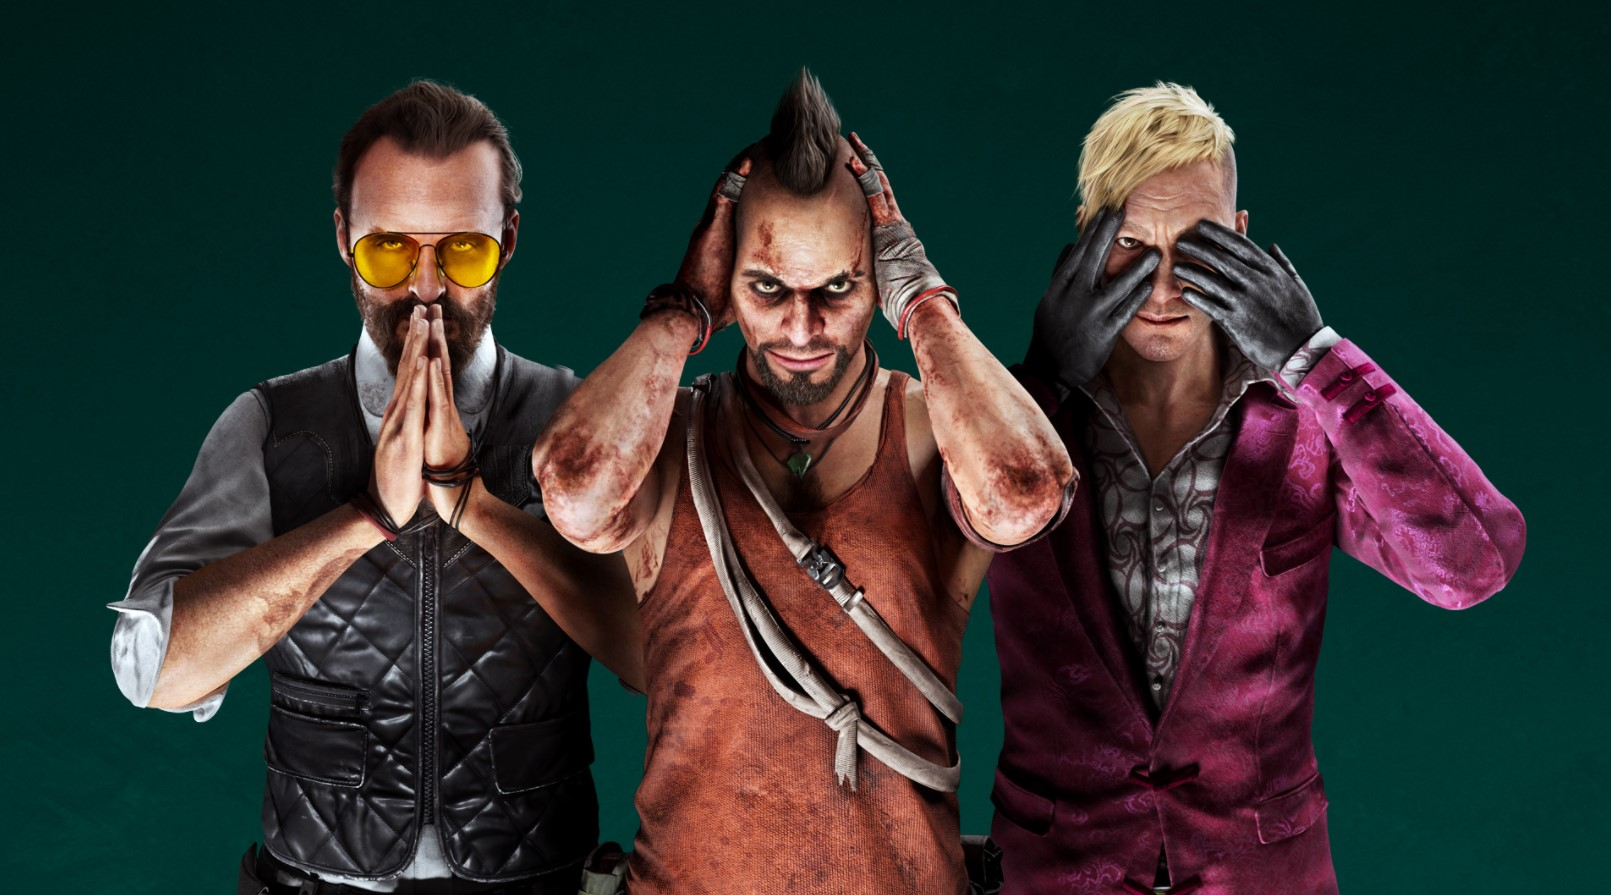 Watch Dogs: Legion and Far Cry 6 teams unveil new updates at Ubisoft Forward